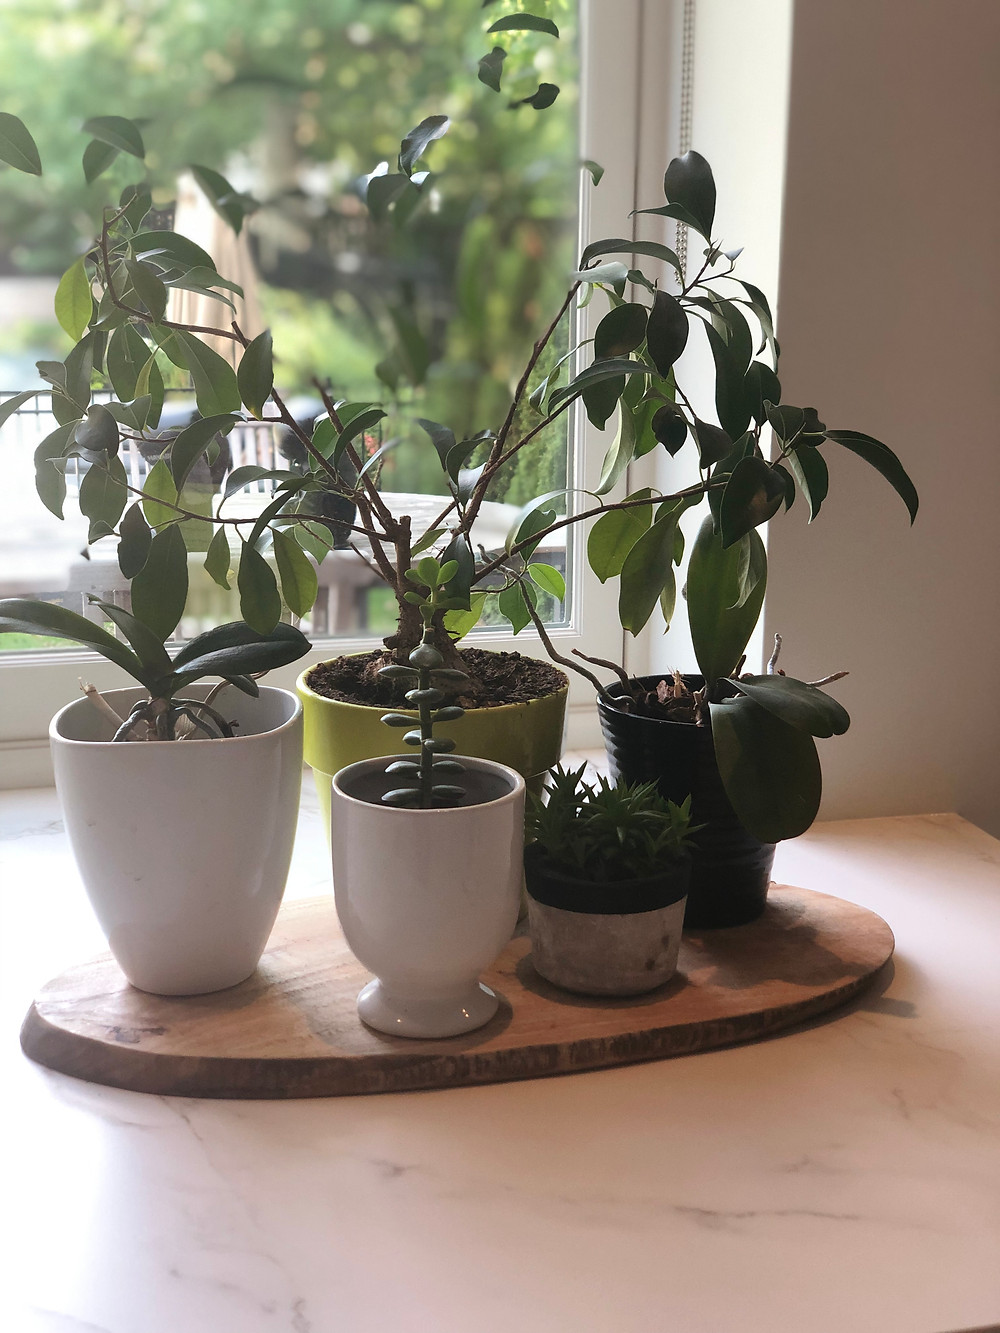 Grouped potted plants in kitchen window